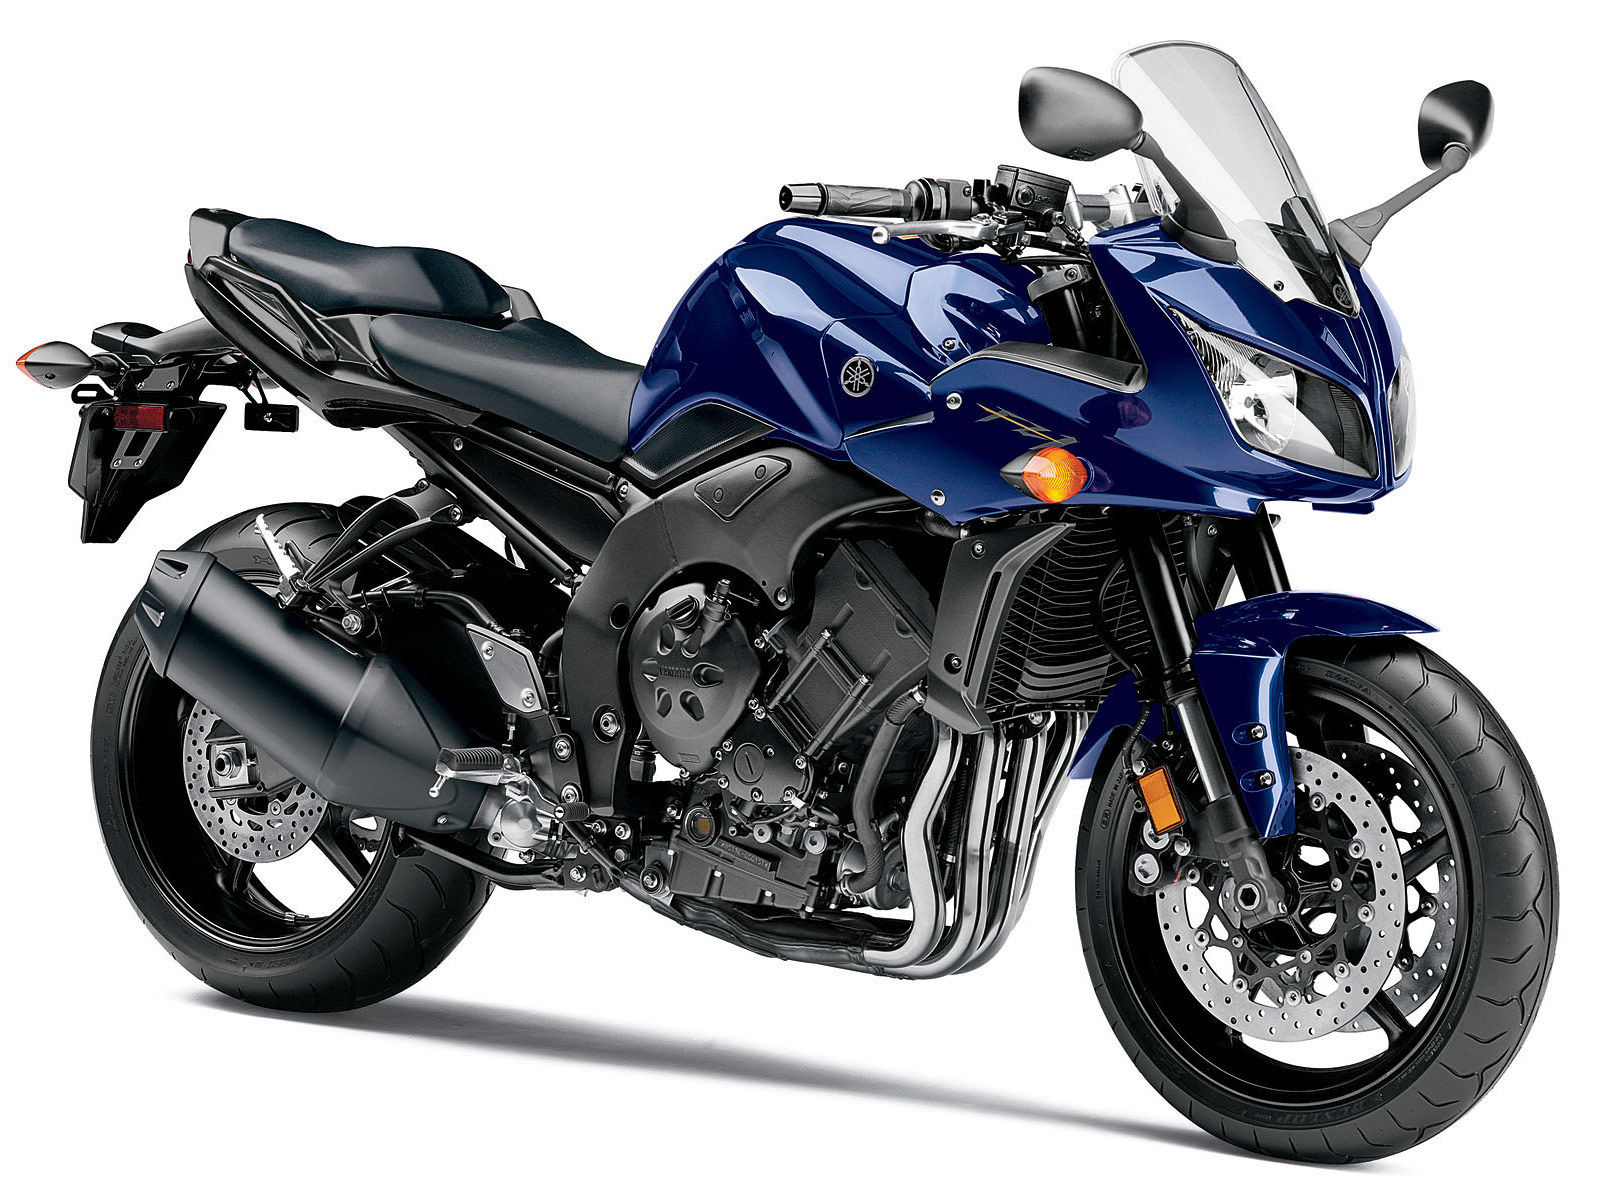 brand new 2013 yamaha fz1 cobalt blue. Black Bedroom Furniture Sets. Home Design Ideas